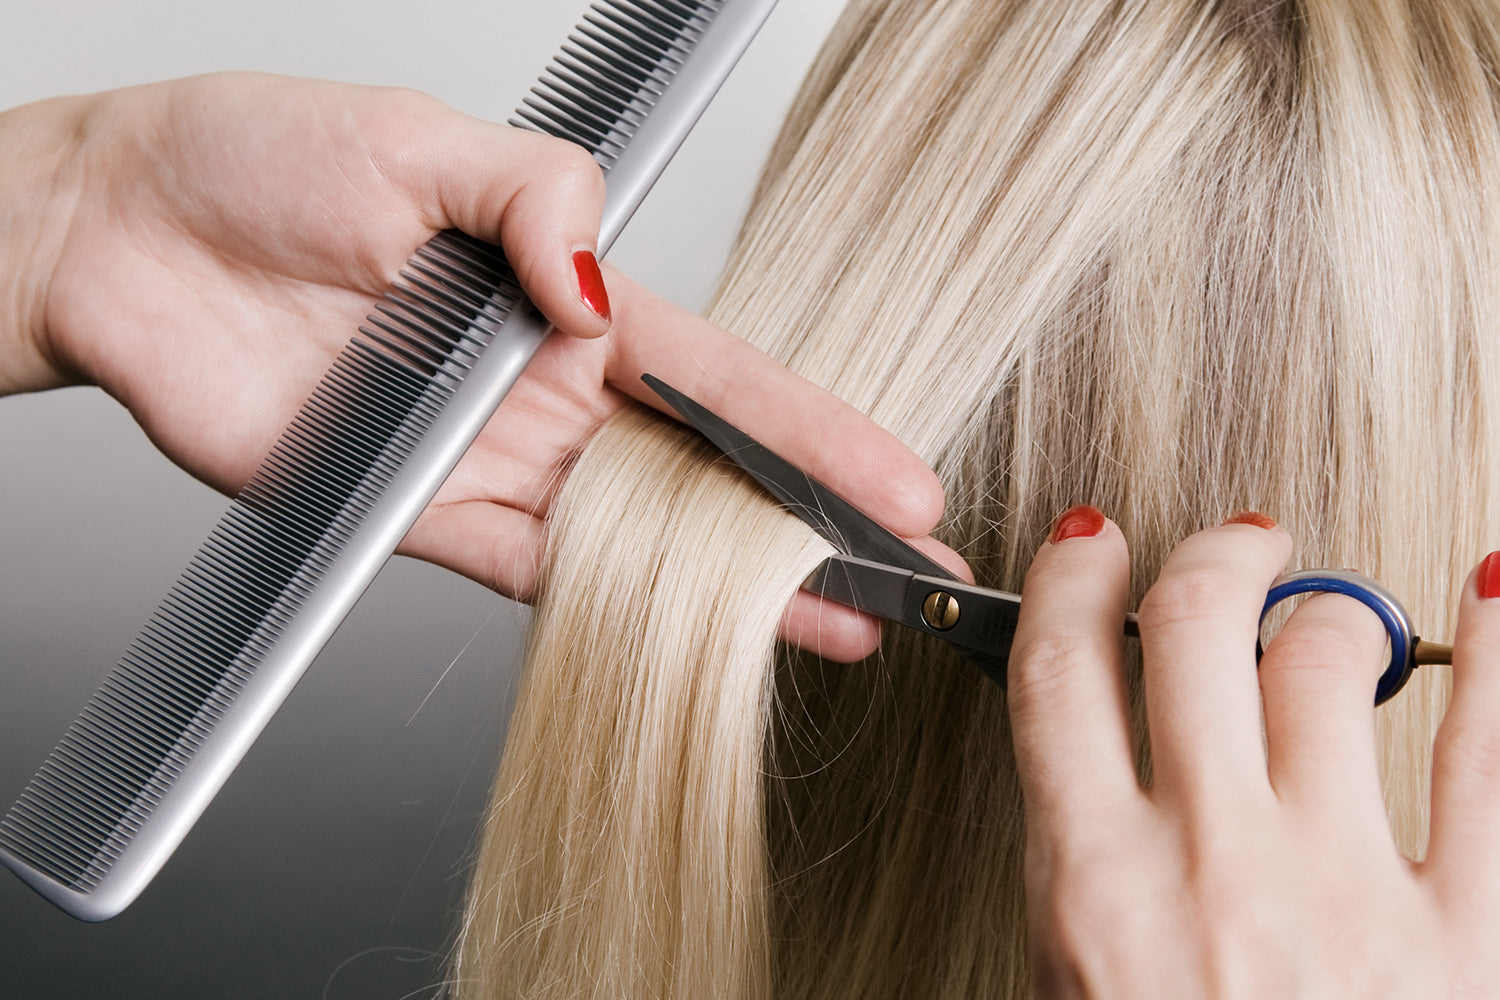 """Myth #10: """"If you cut your hair every 10 weeks, it will grow faster"""